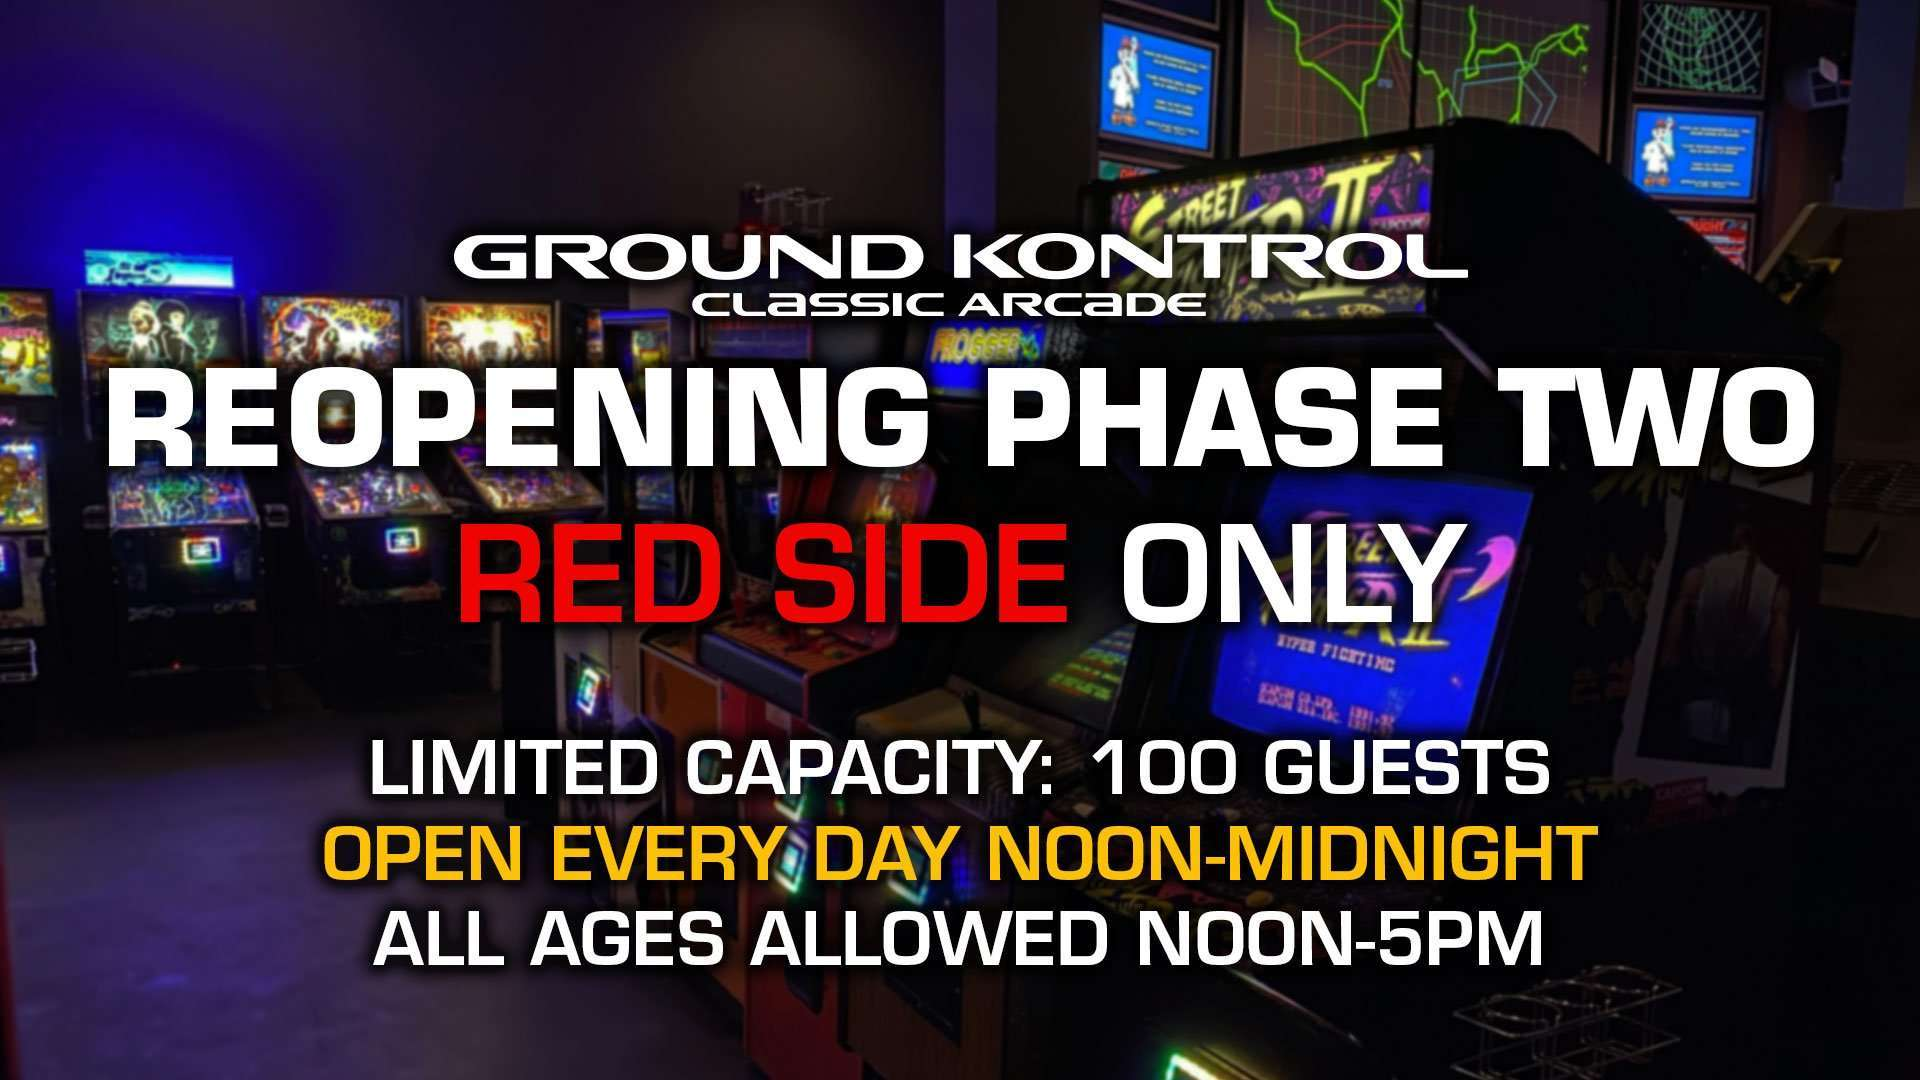 Phase Two Reopening Information